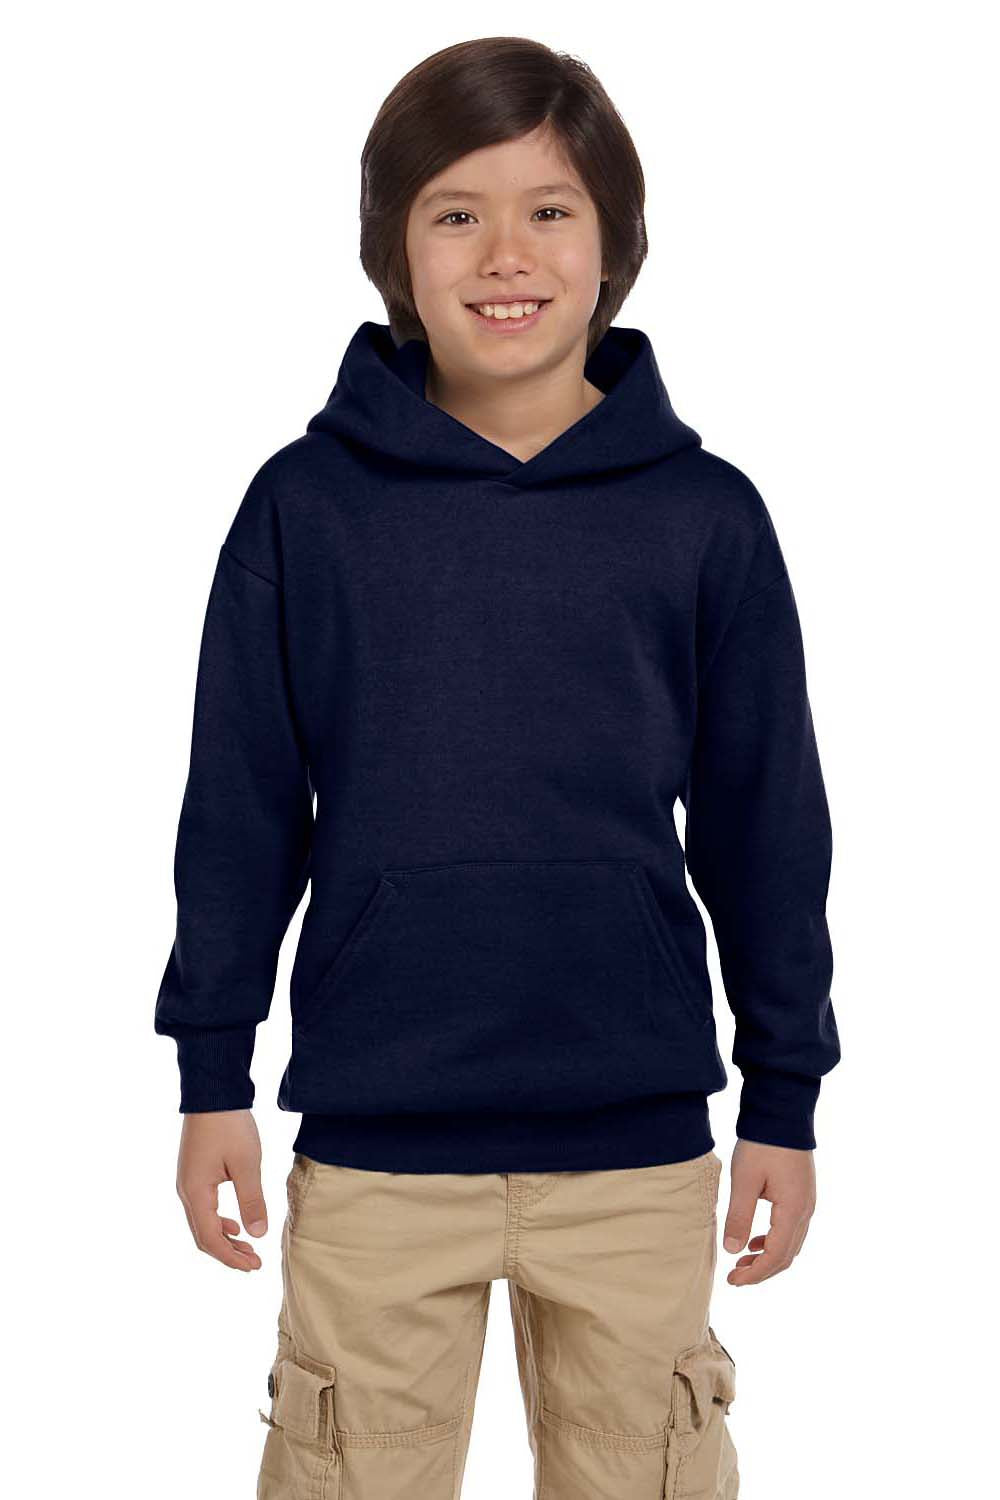 Hanes P473 Youth EcoSmart Print Pro XP Hooded Sweatshirt Hoodie Navy Blue Front